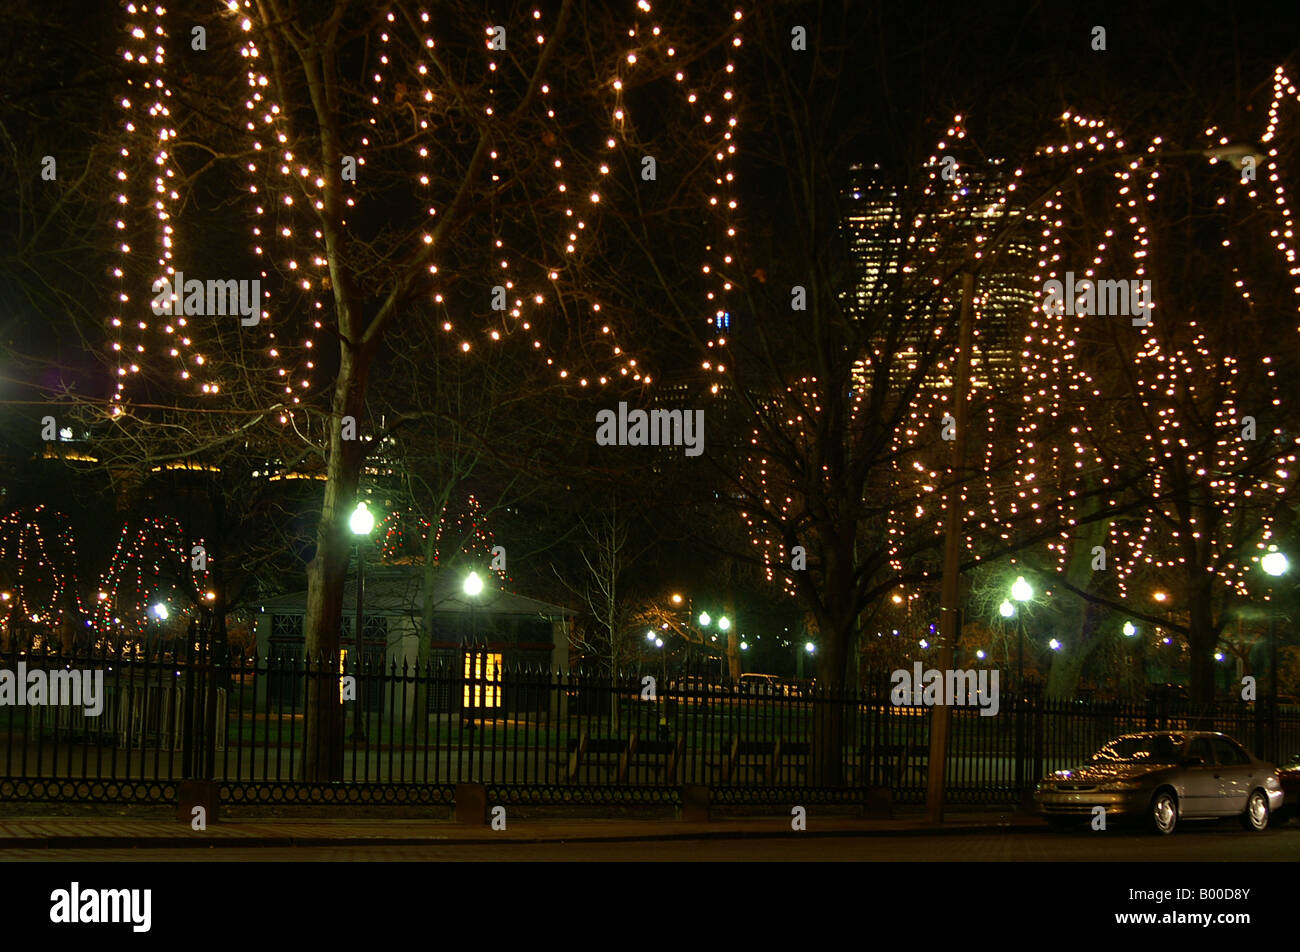 Boston Christmas Lights.Christmas Lights In The Trees Of Boston Common Stock Photo